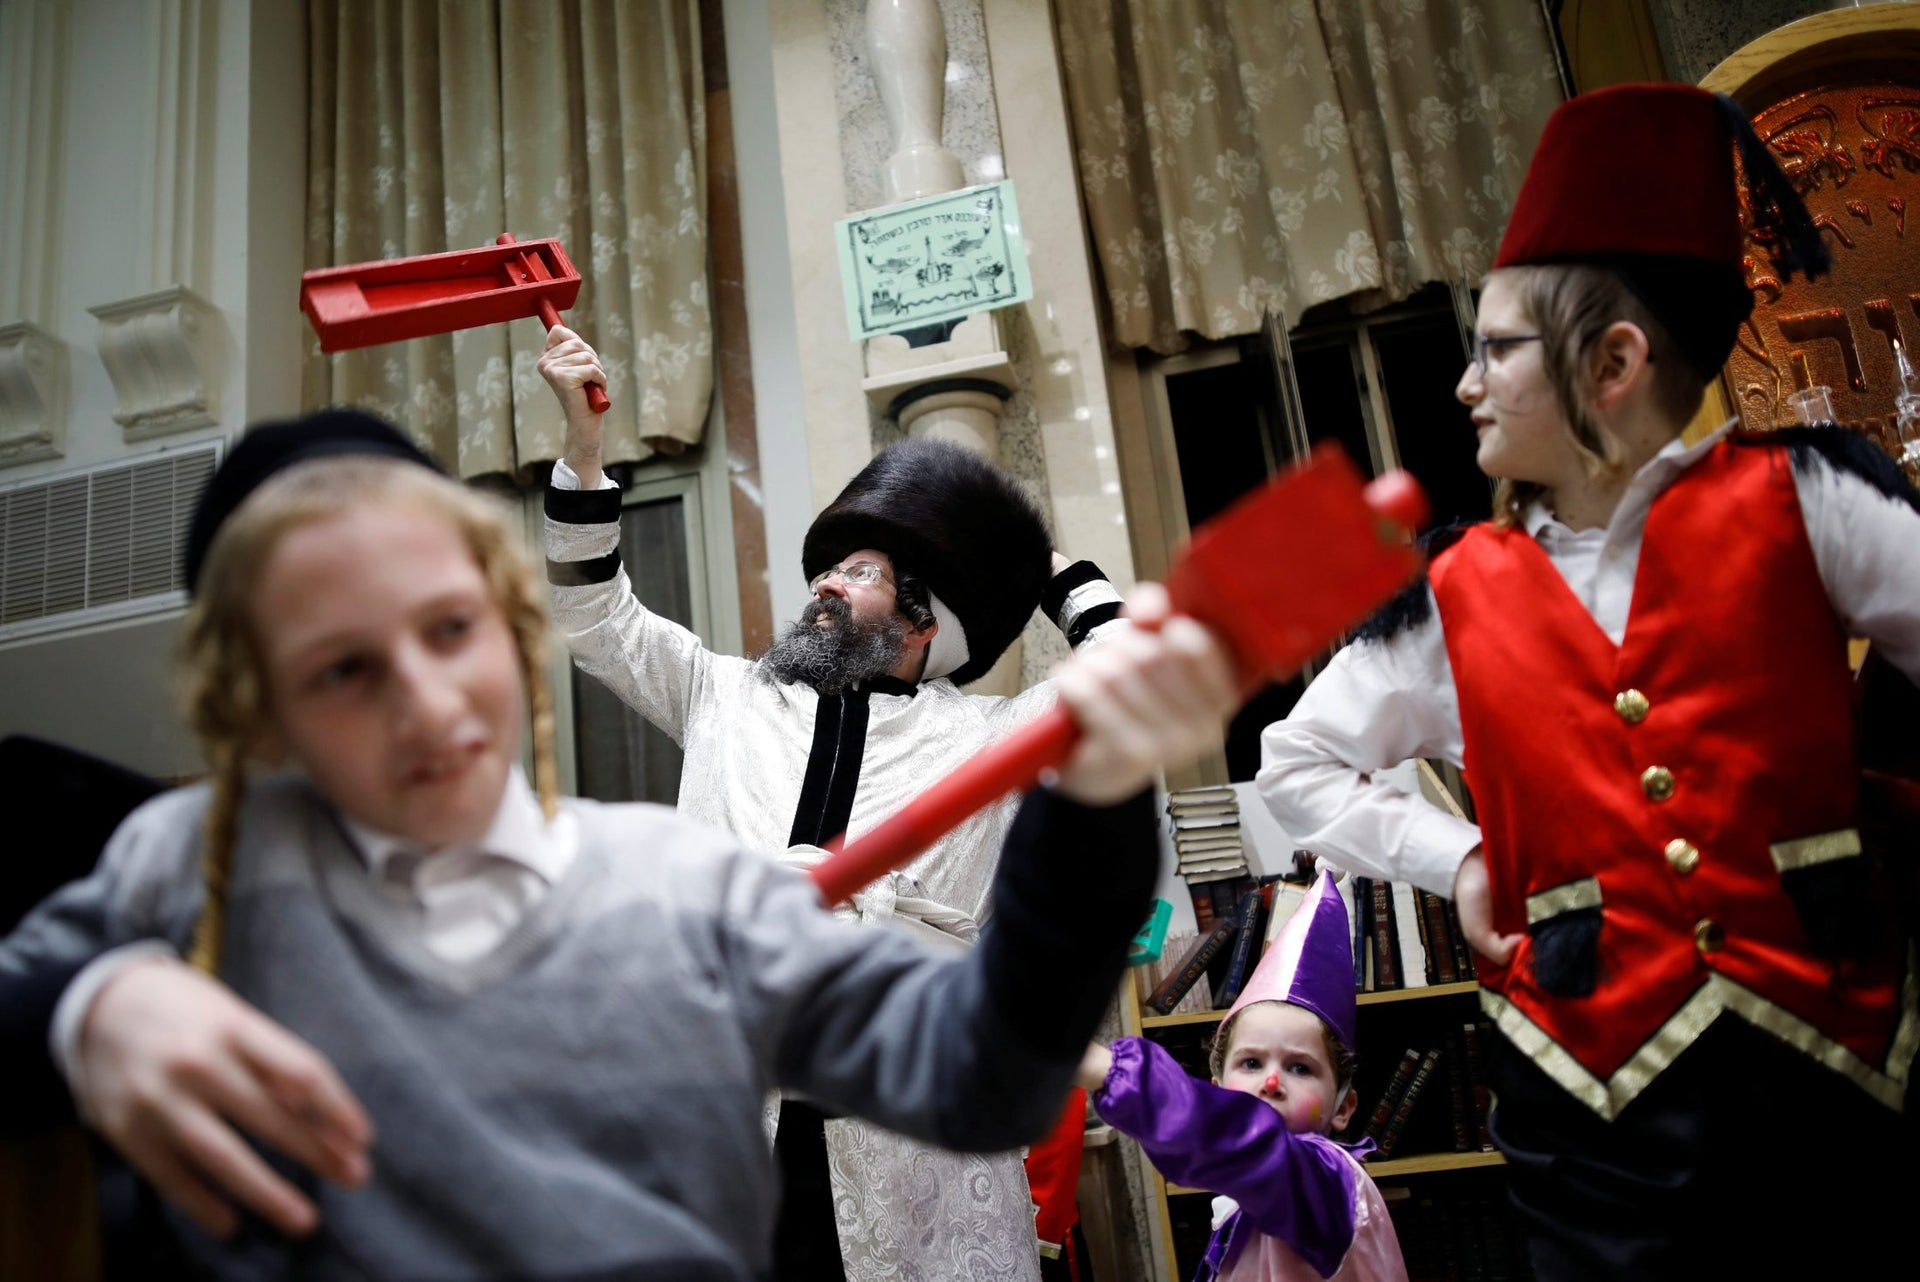 Ultra-Orthodox Jews take part in the reading from the Book of Esther, a ceremony performed on the Jewish holiday of Purim, in a synagogue in Ashdod, Israel, February 28, 2018.